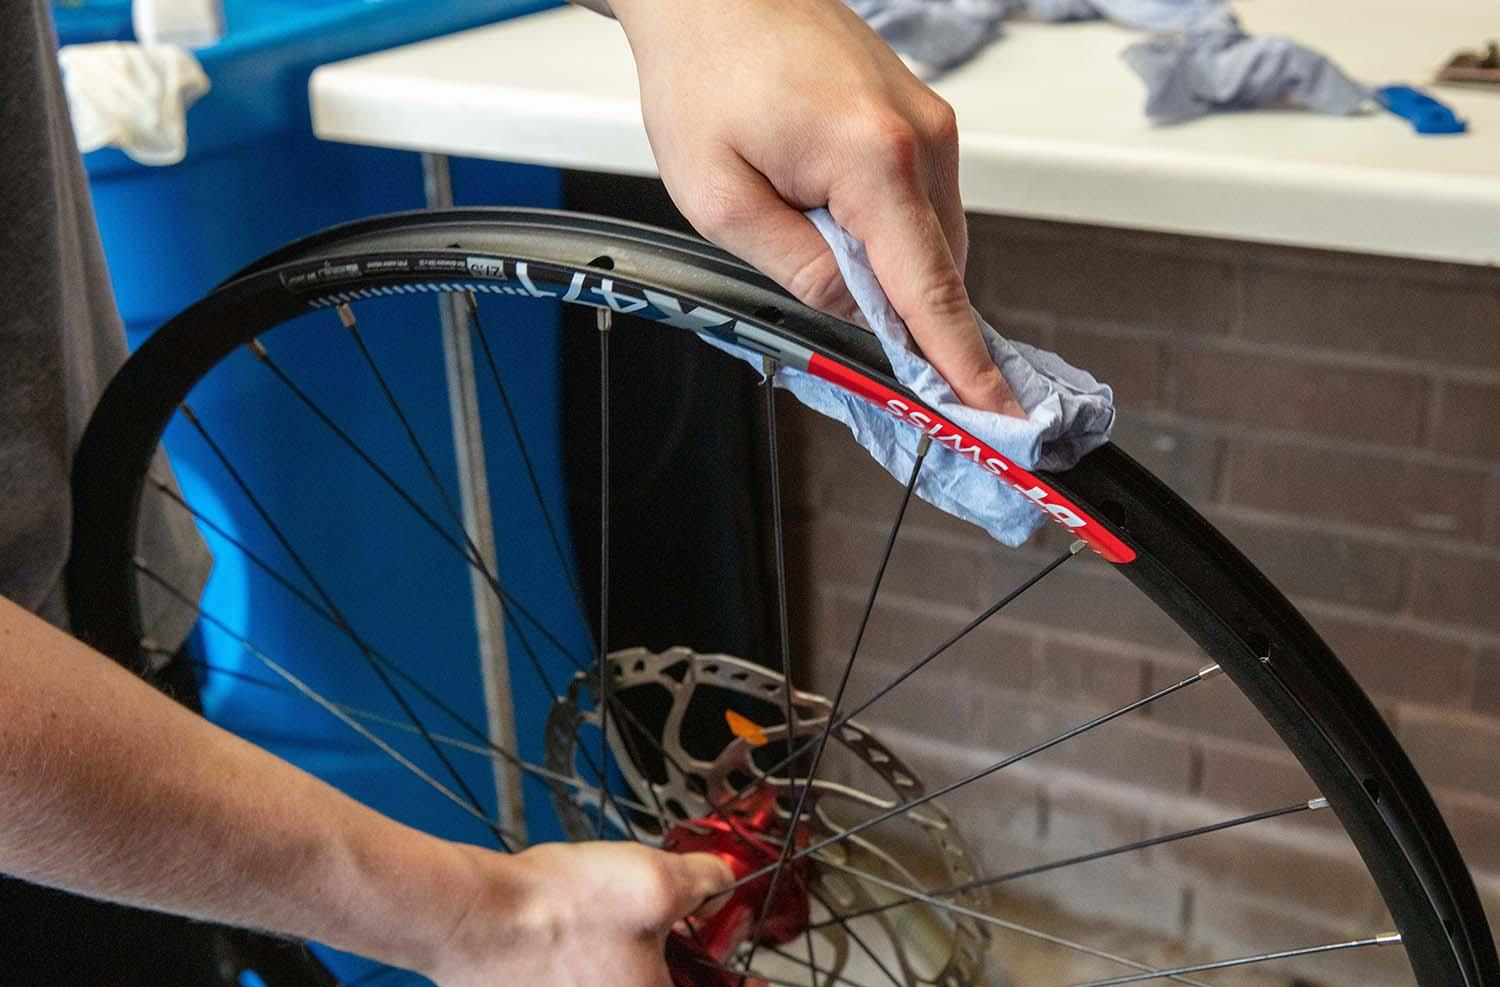 Cleaning a rim